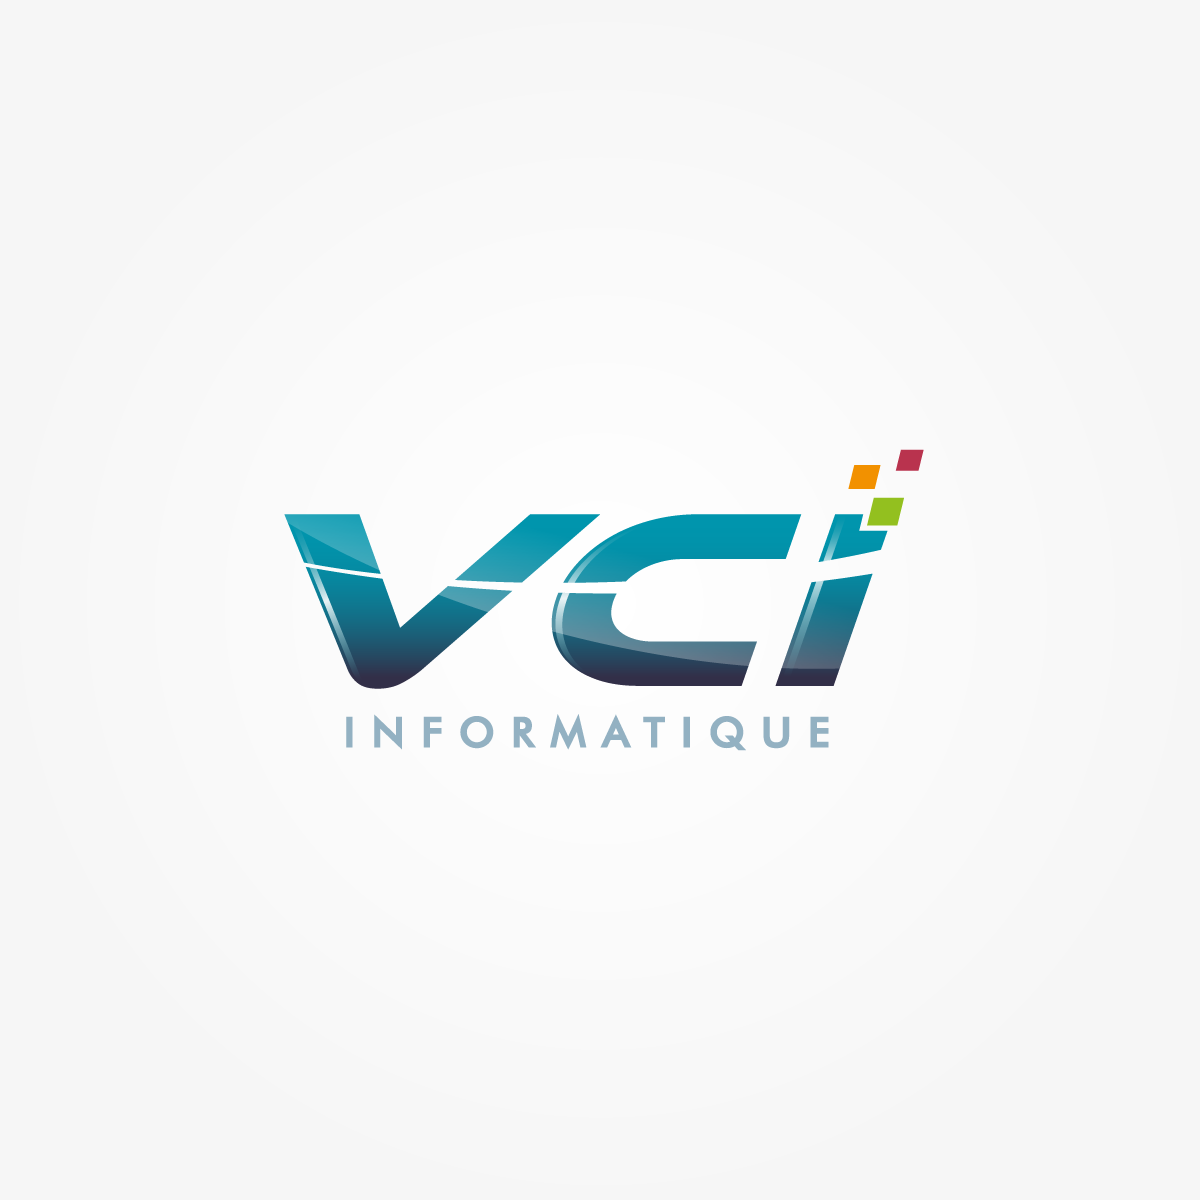 vci-informatique-logo